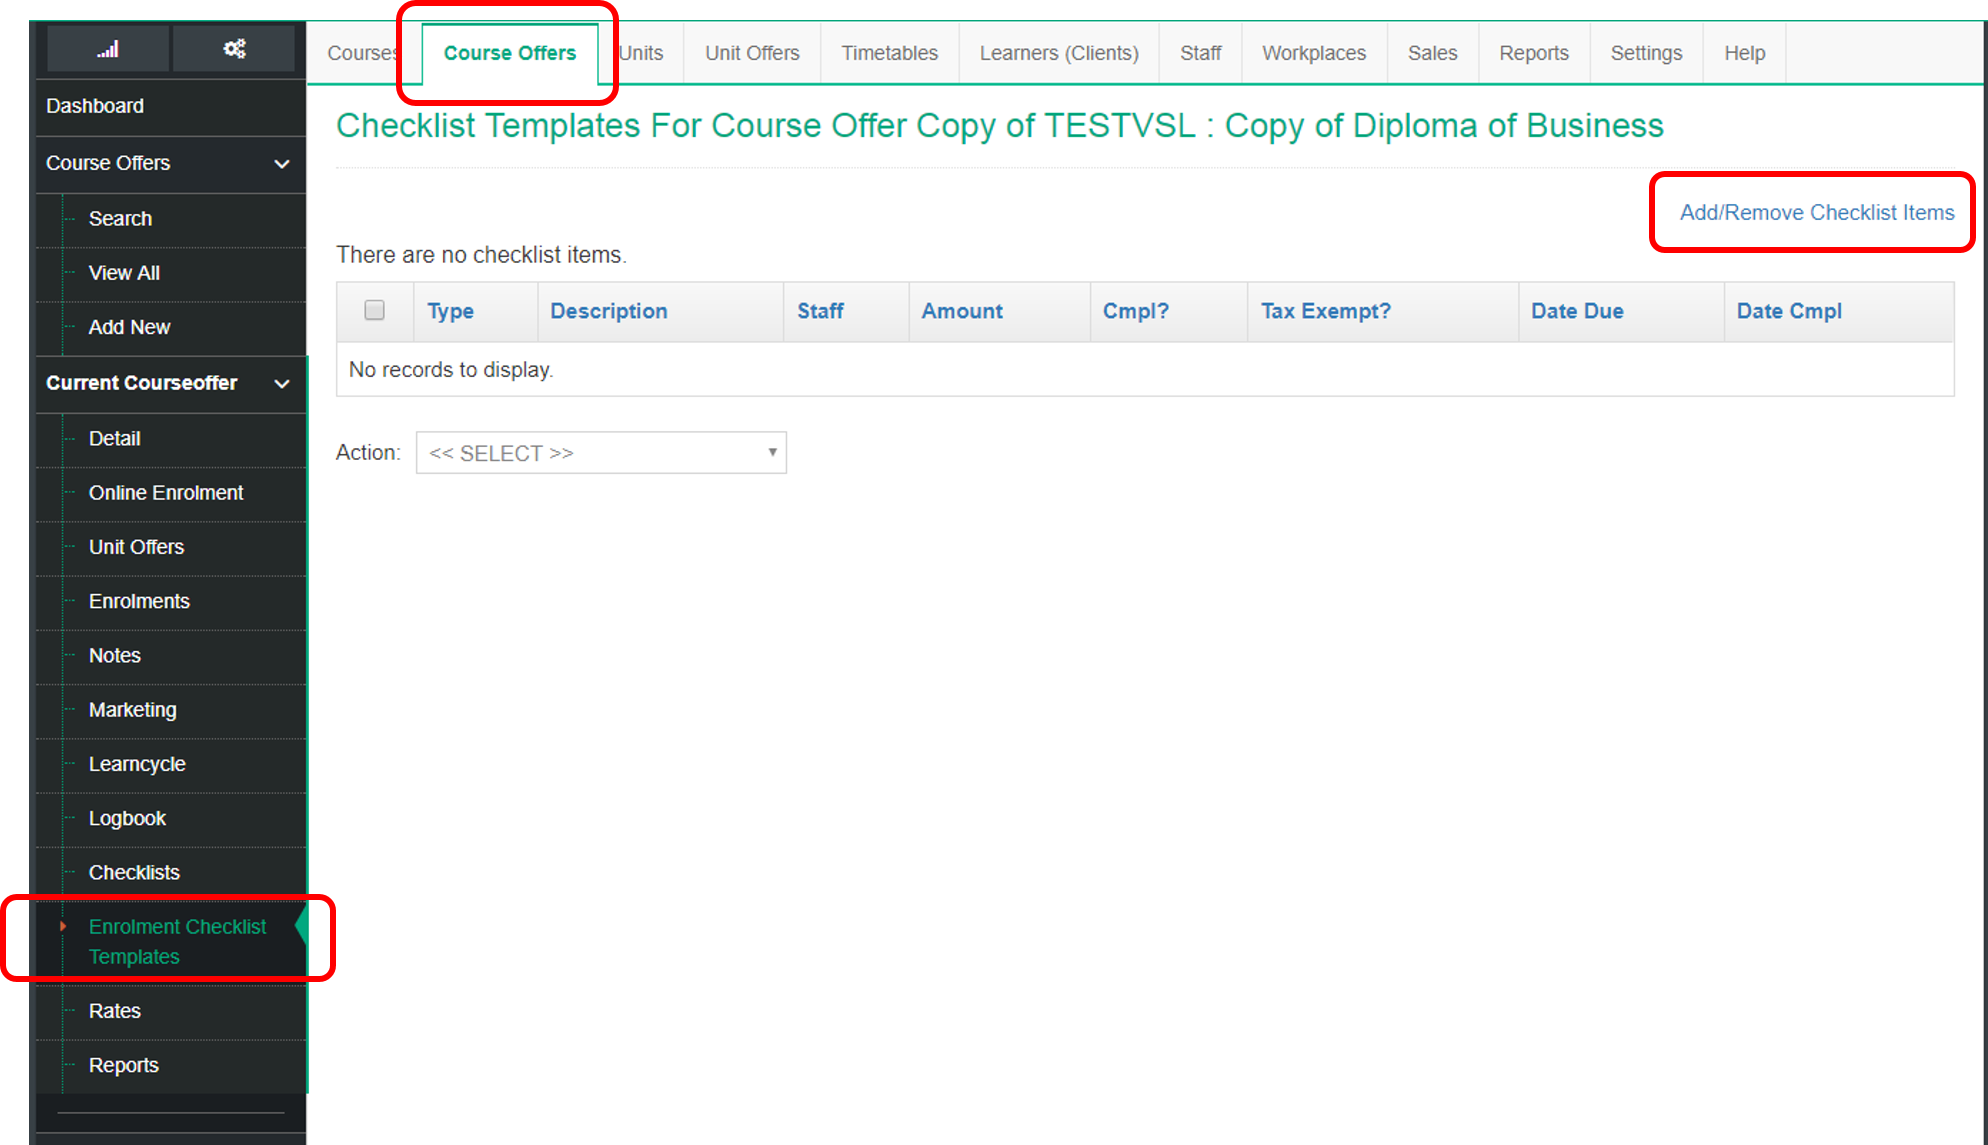 How To Set Up Enrolment Checklist Templates Wisenet Resources